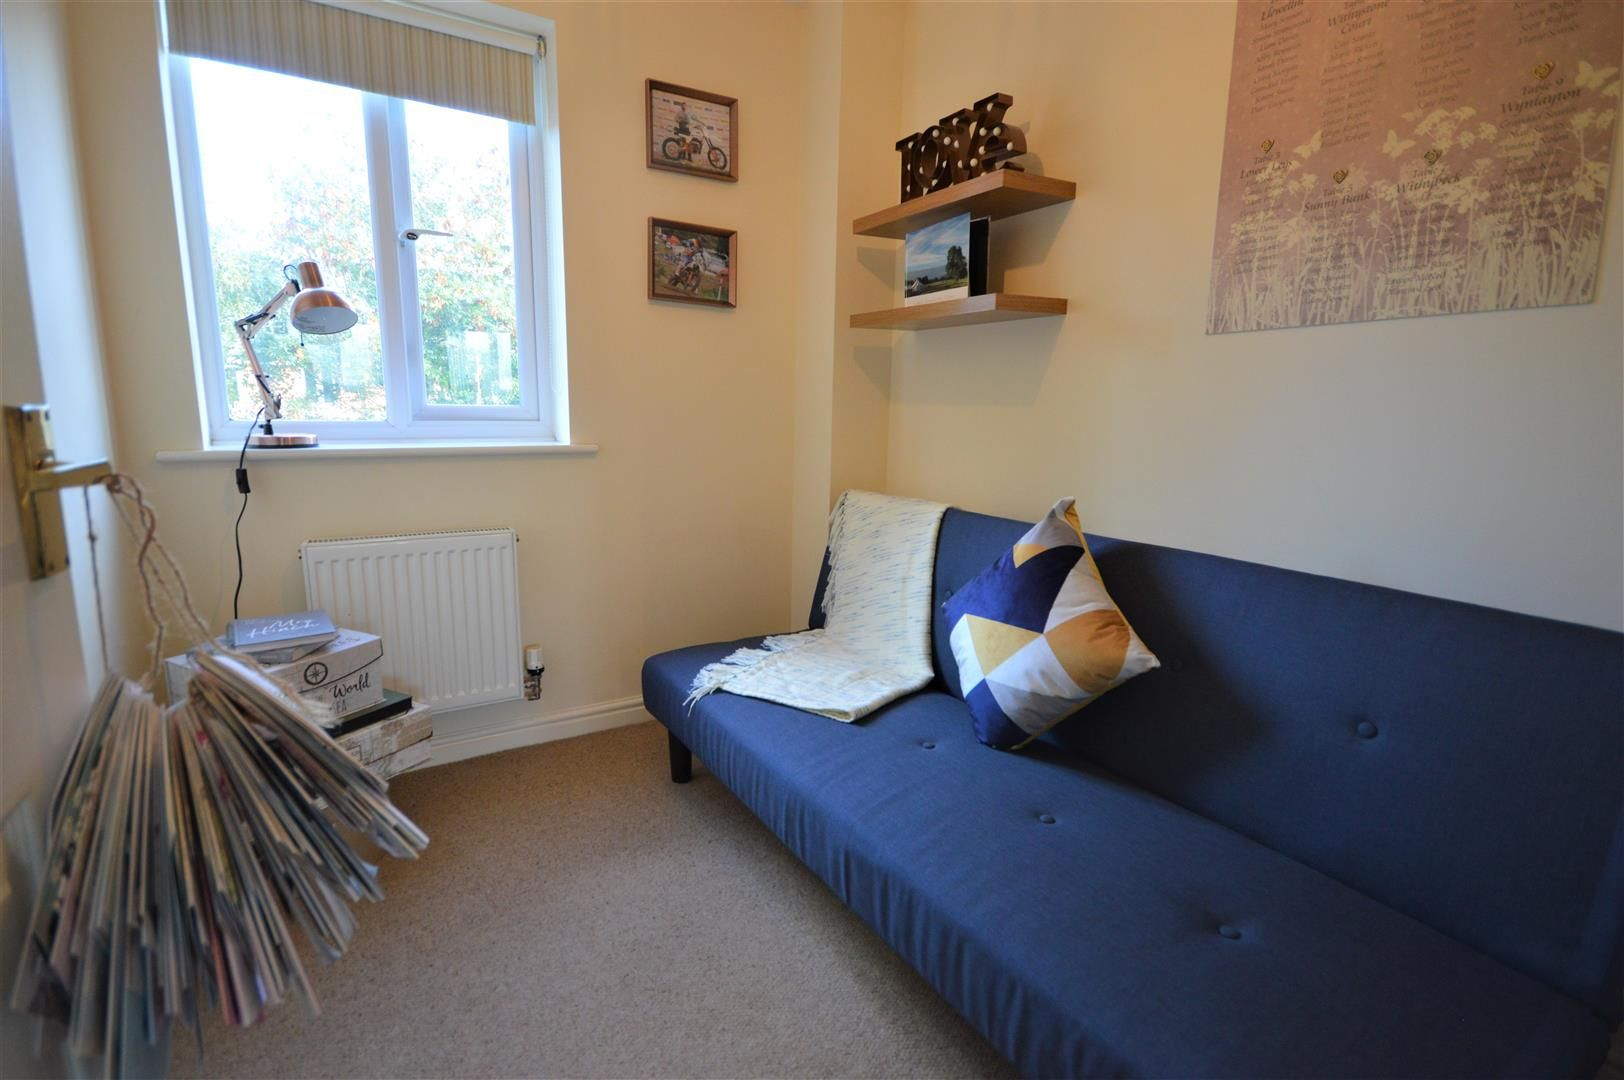 4 bed semi-detached for sale in Leominster 11